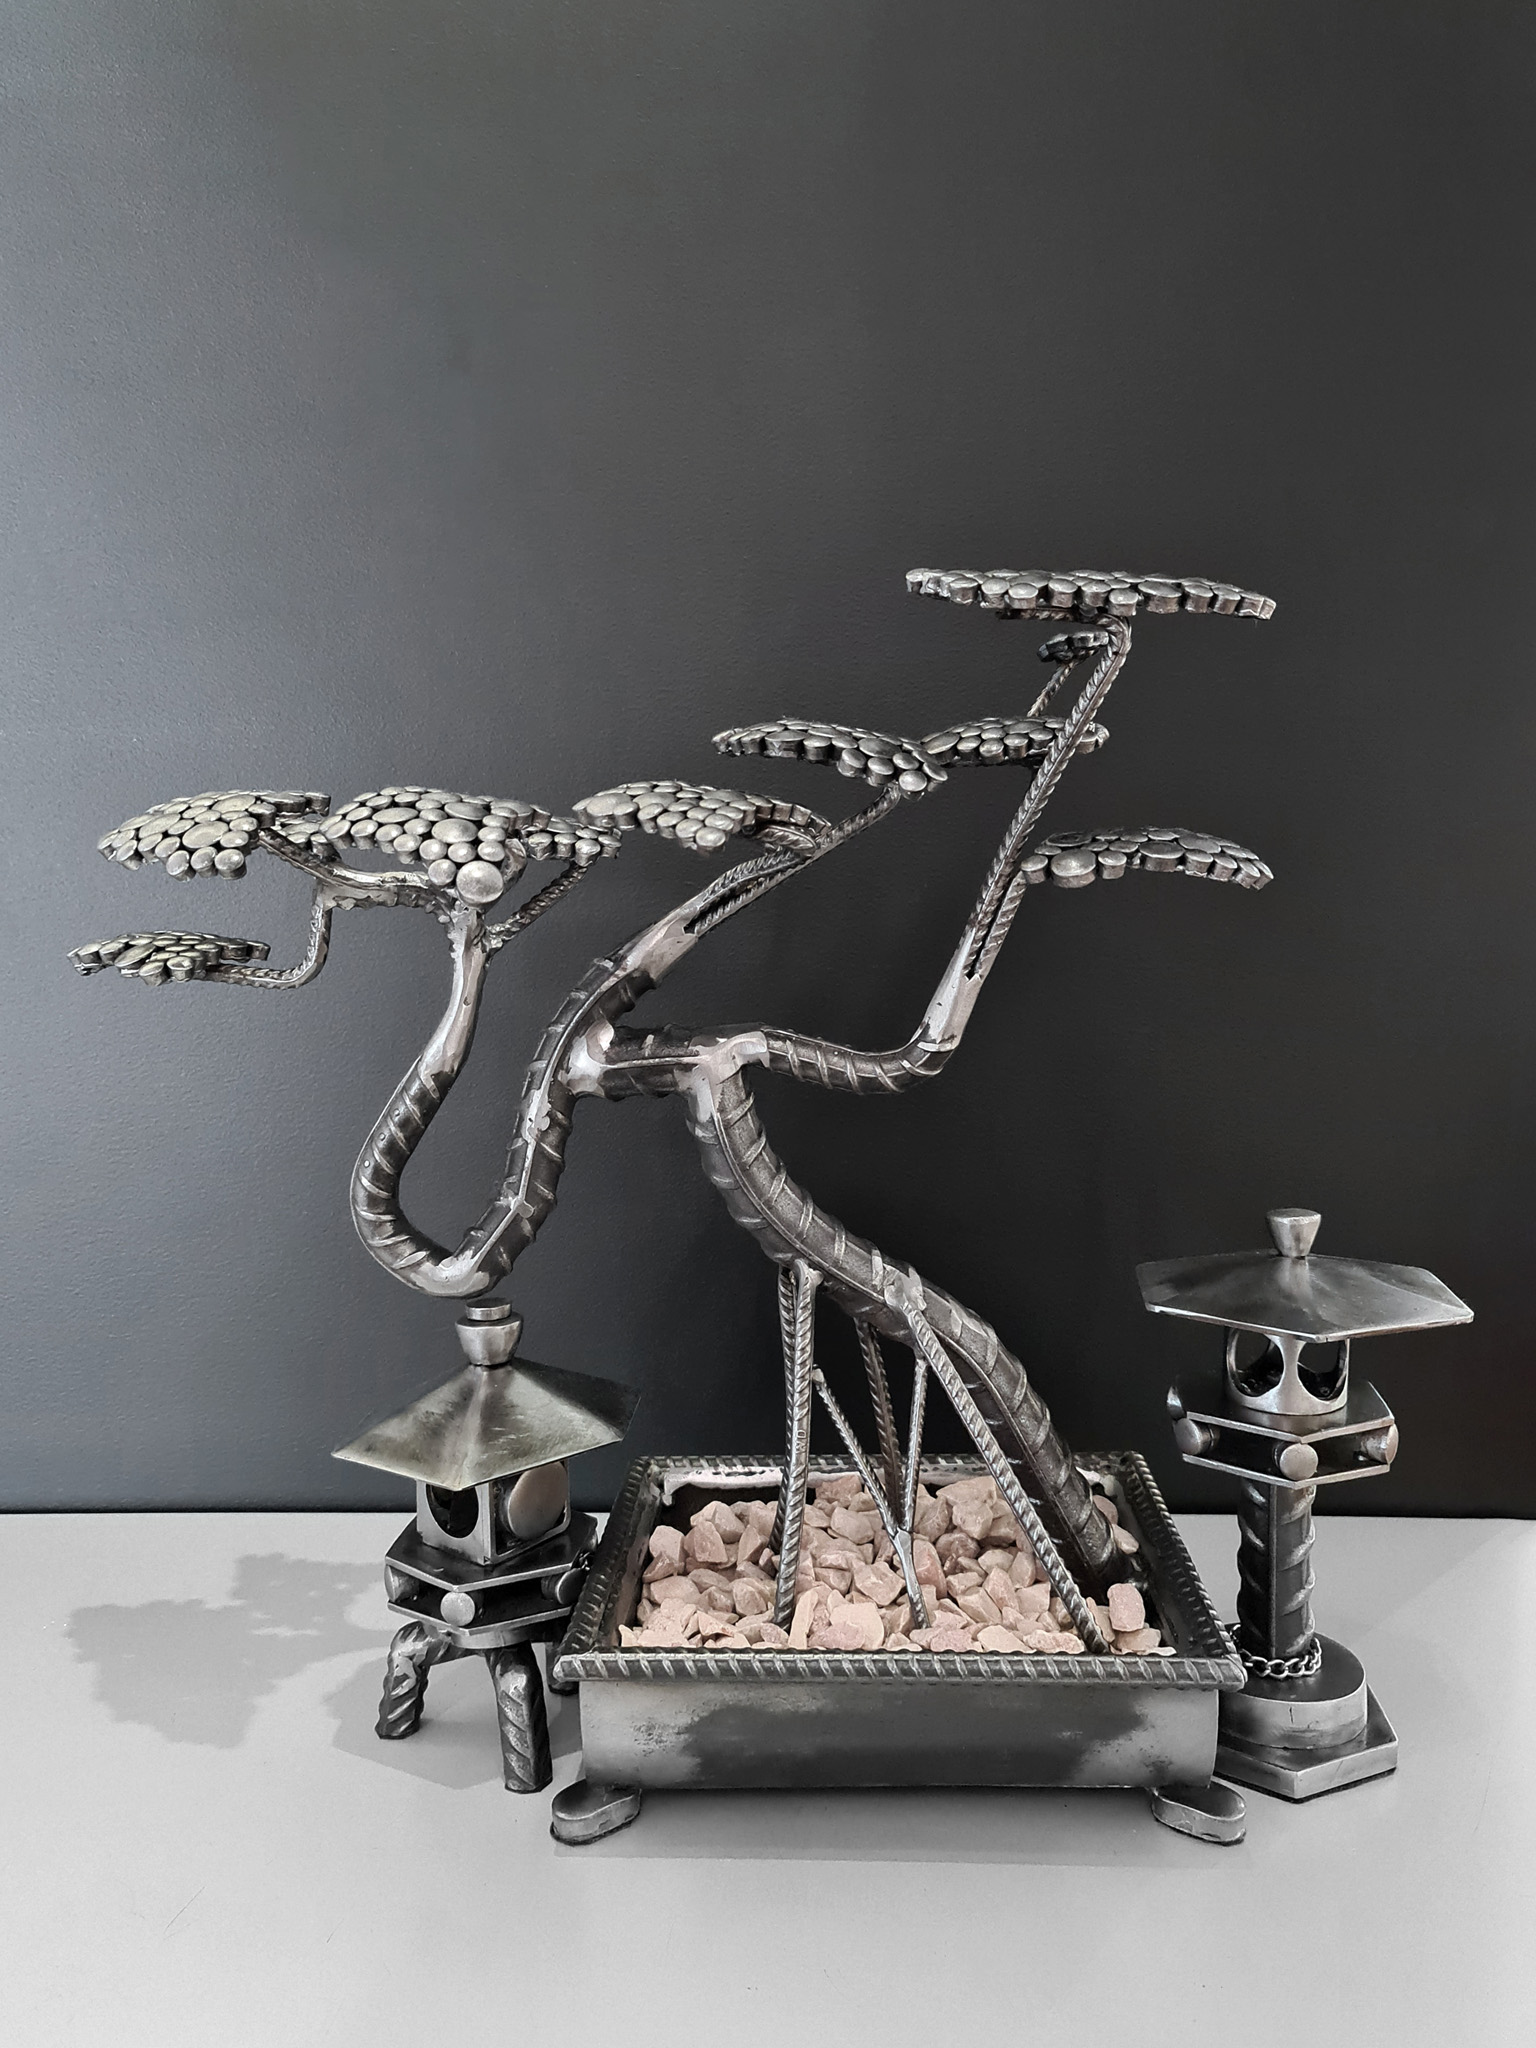 Steel Bonsai and Yukimi Lantern by Kevin Singer